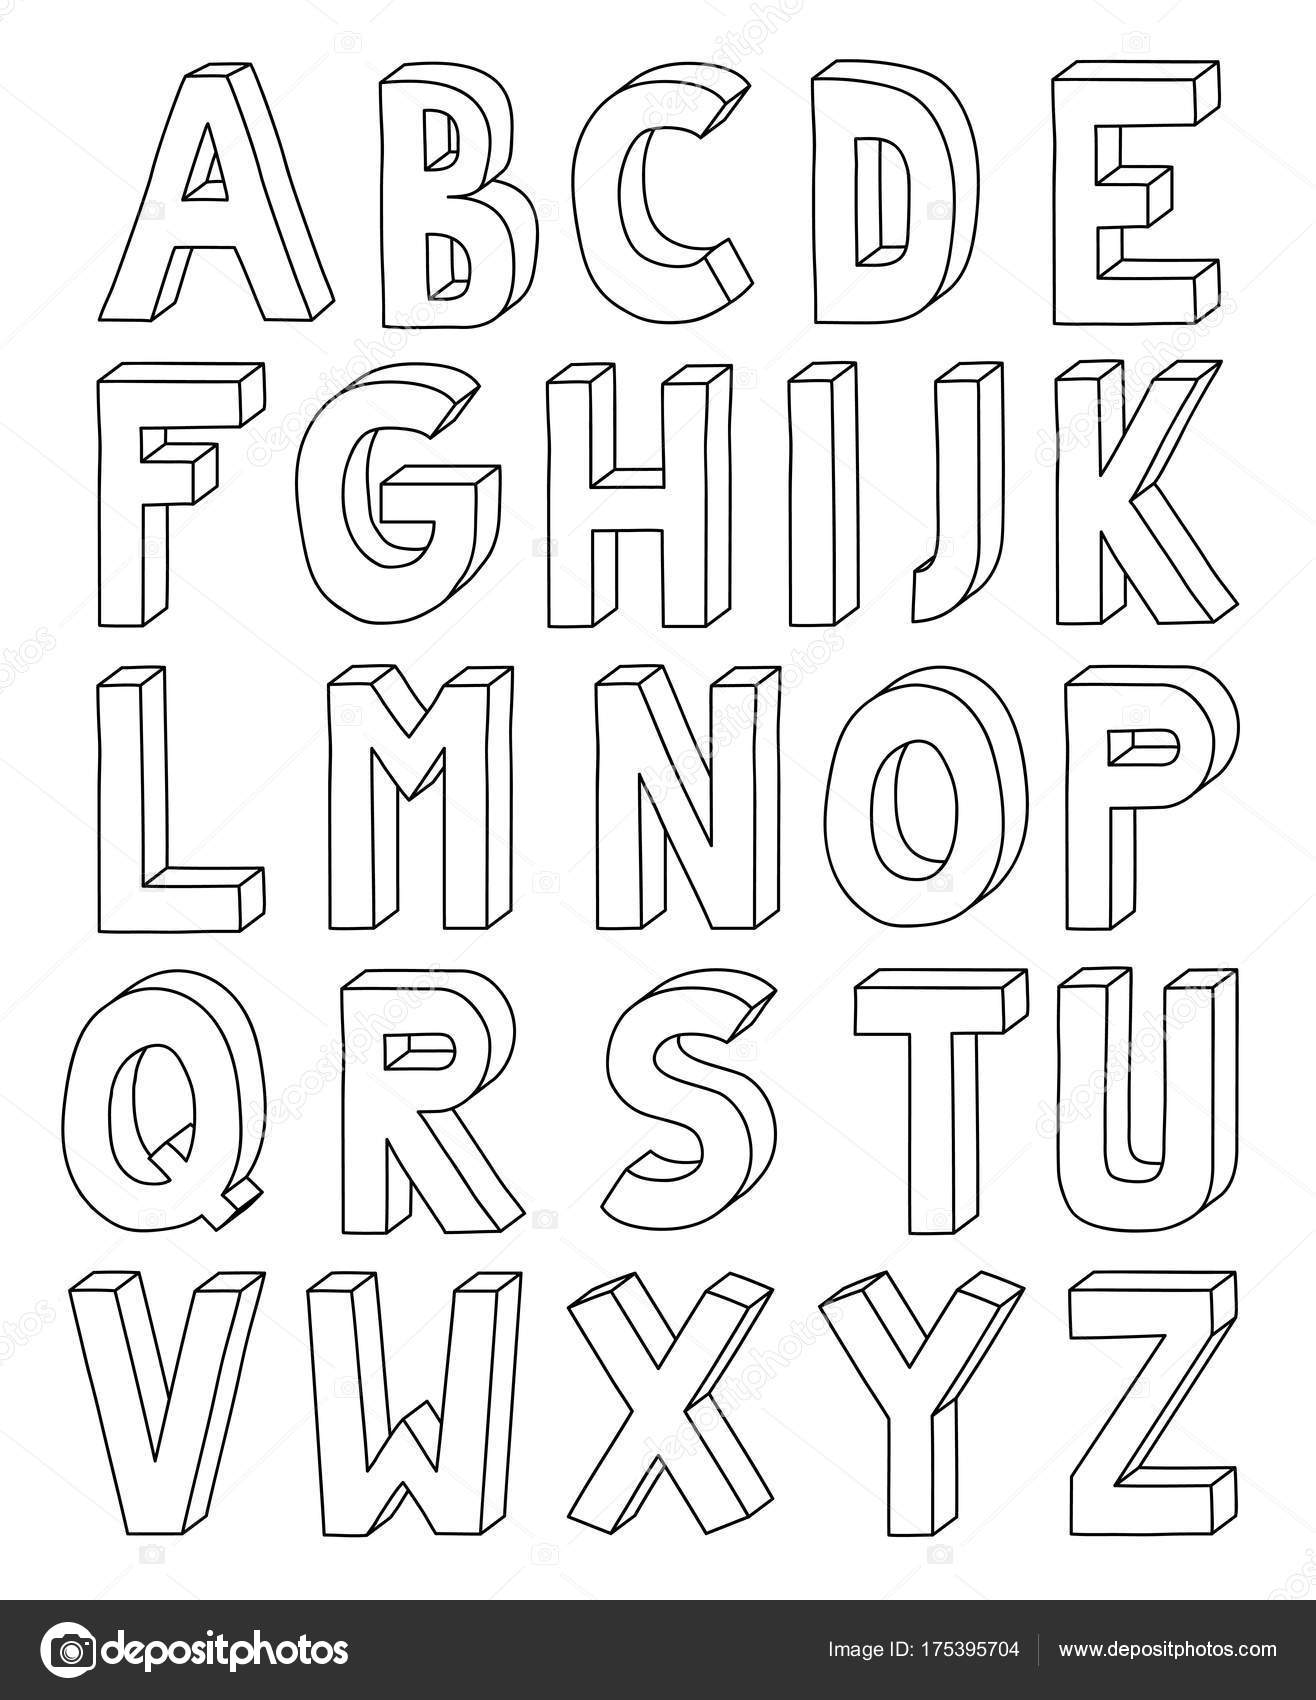 3d outline alphabet from letter a to z in a4 sheet stock vector 3d outline alphabet from letter a to z in a4 sheet stock vector spiritdancerdesigns Image collections